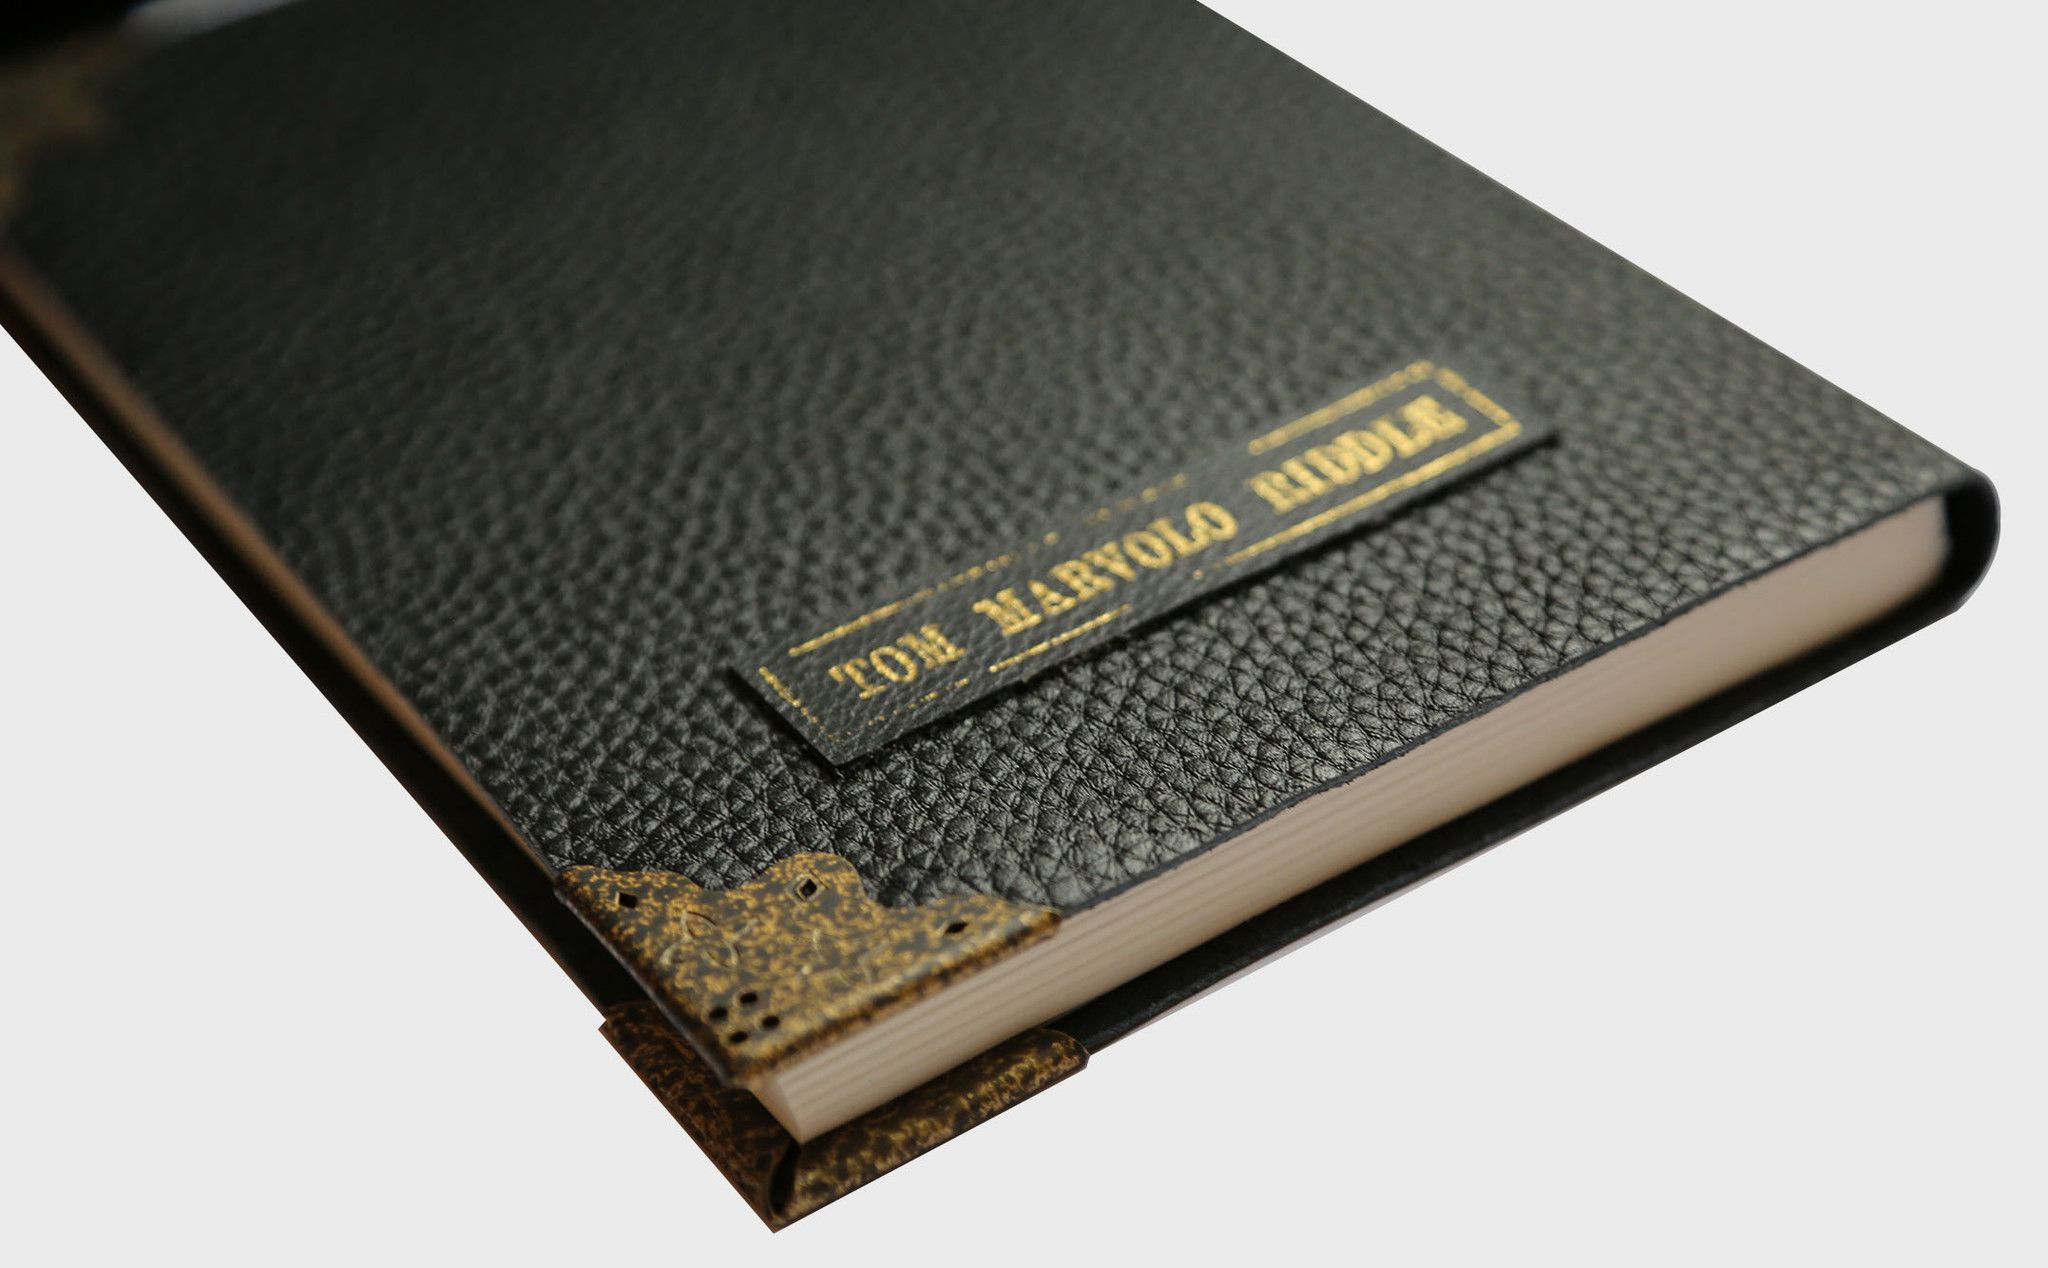 Tom Riddle's Diary The Harry Potter Shop at Platform 9 3/4